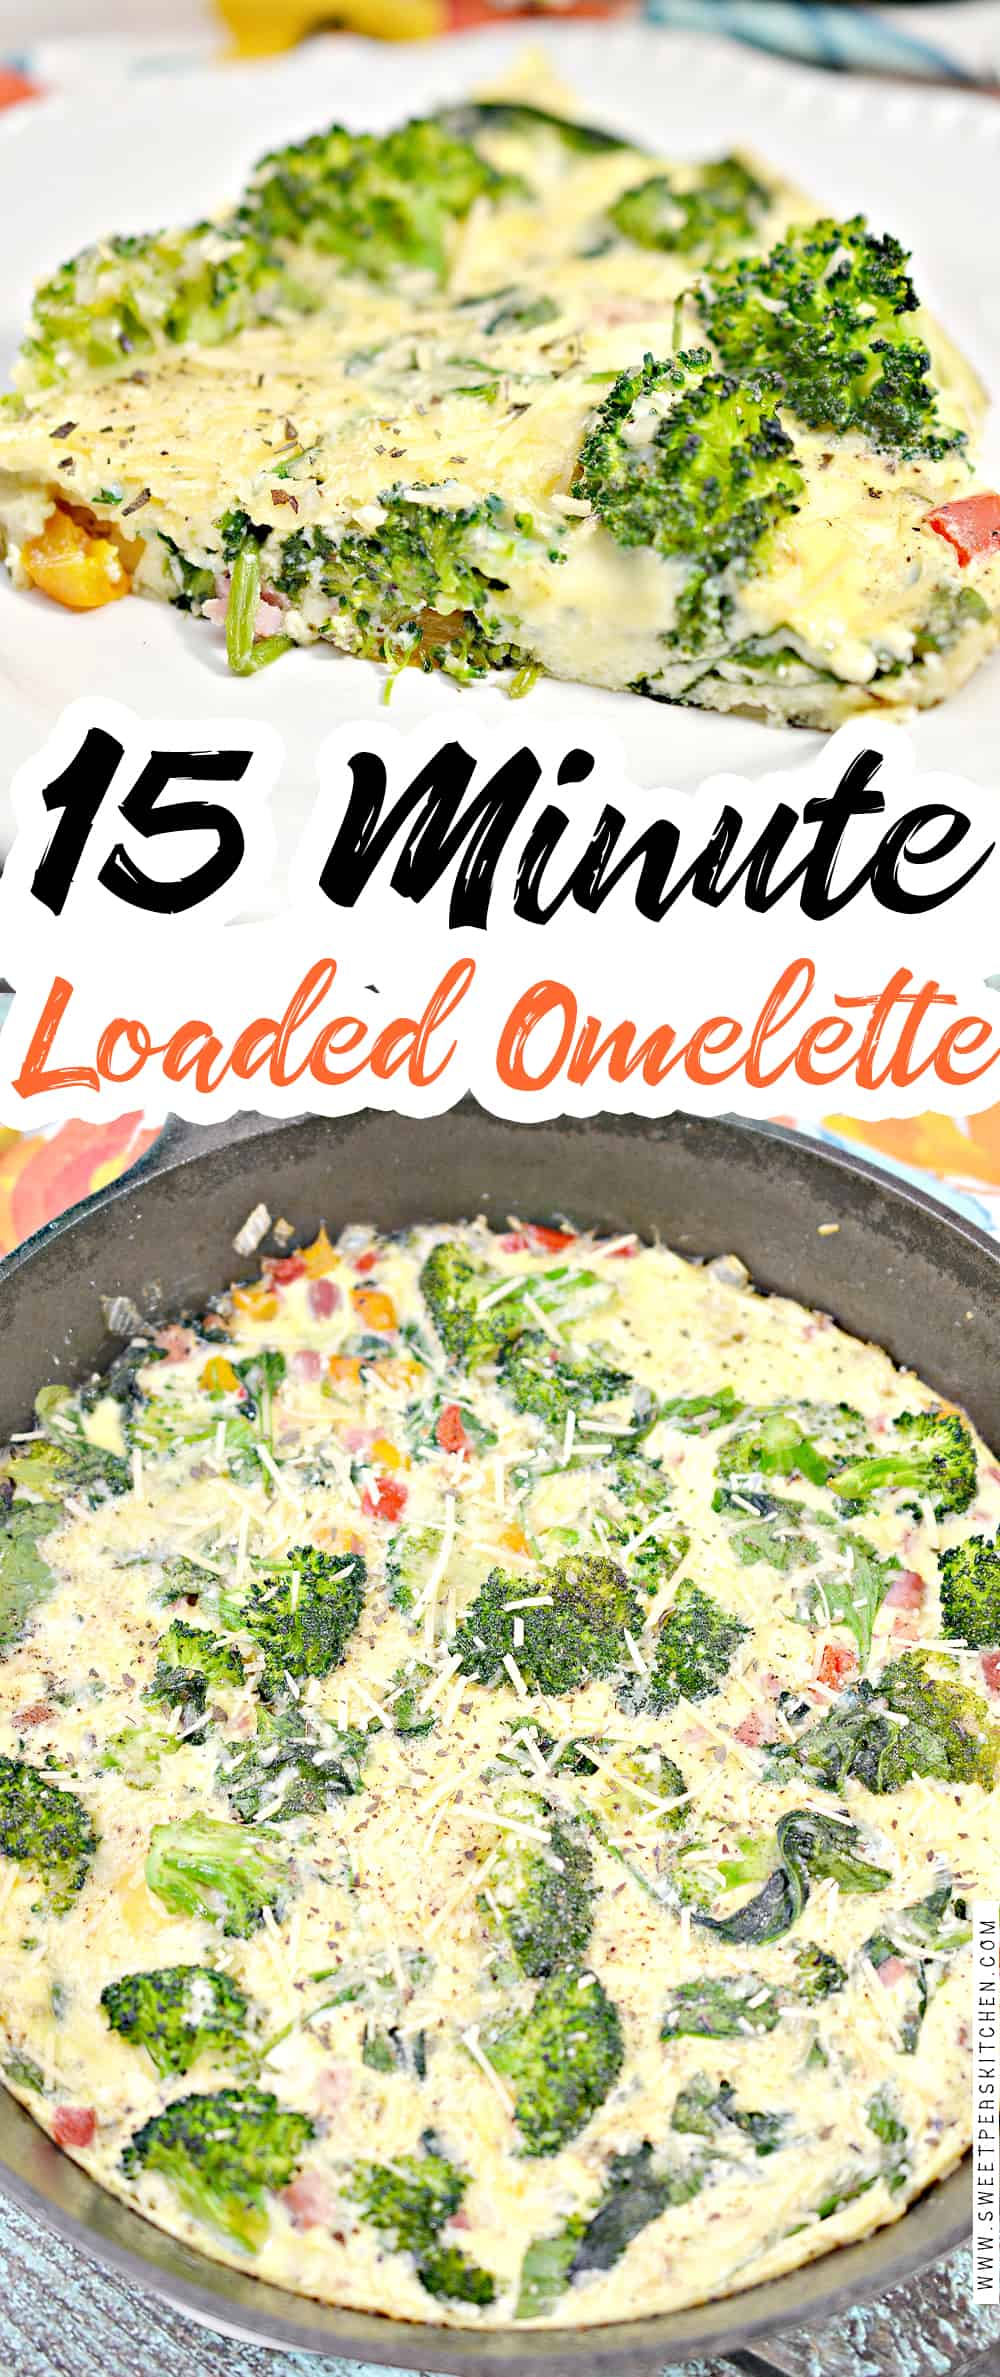 15 Minute Loaded Omelette